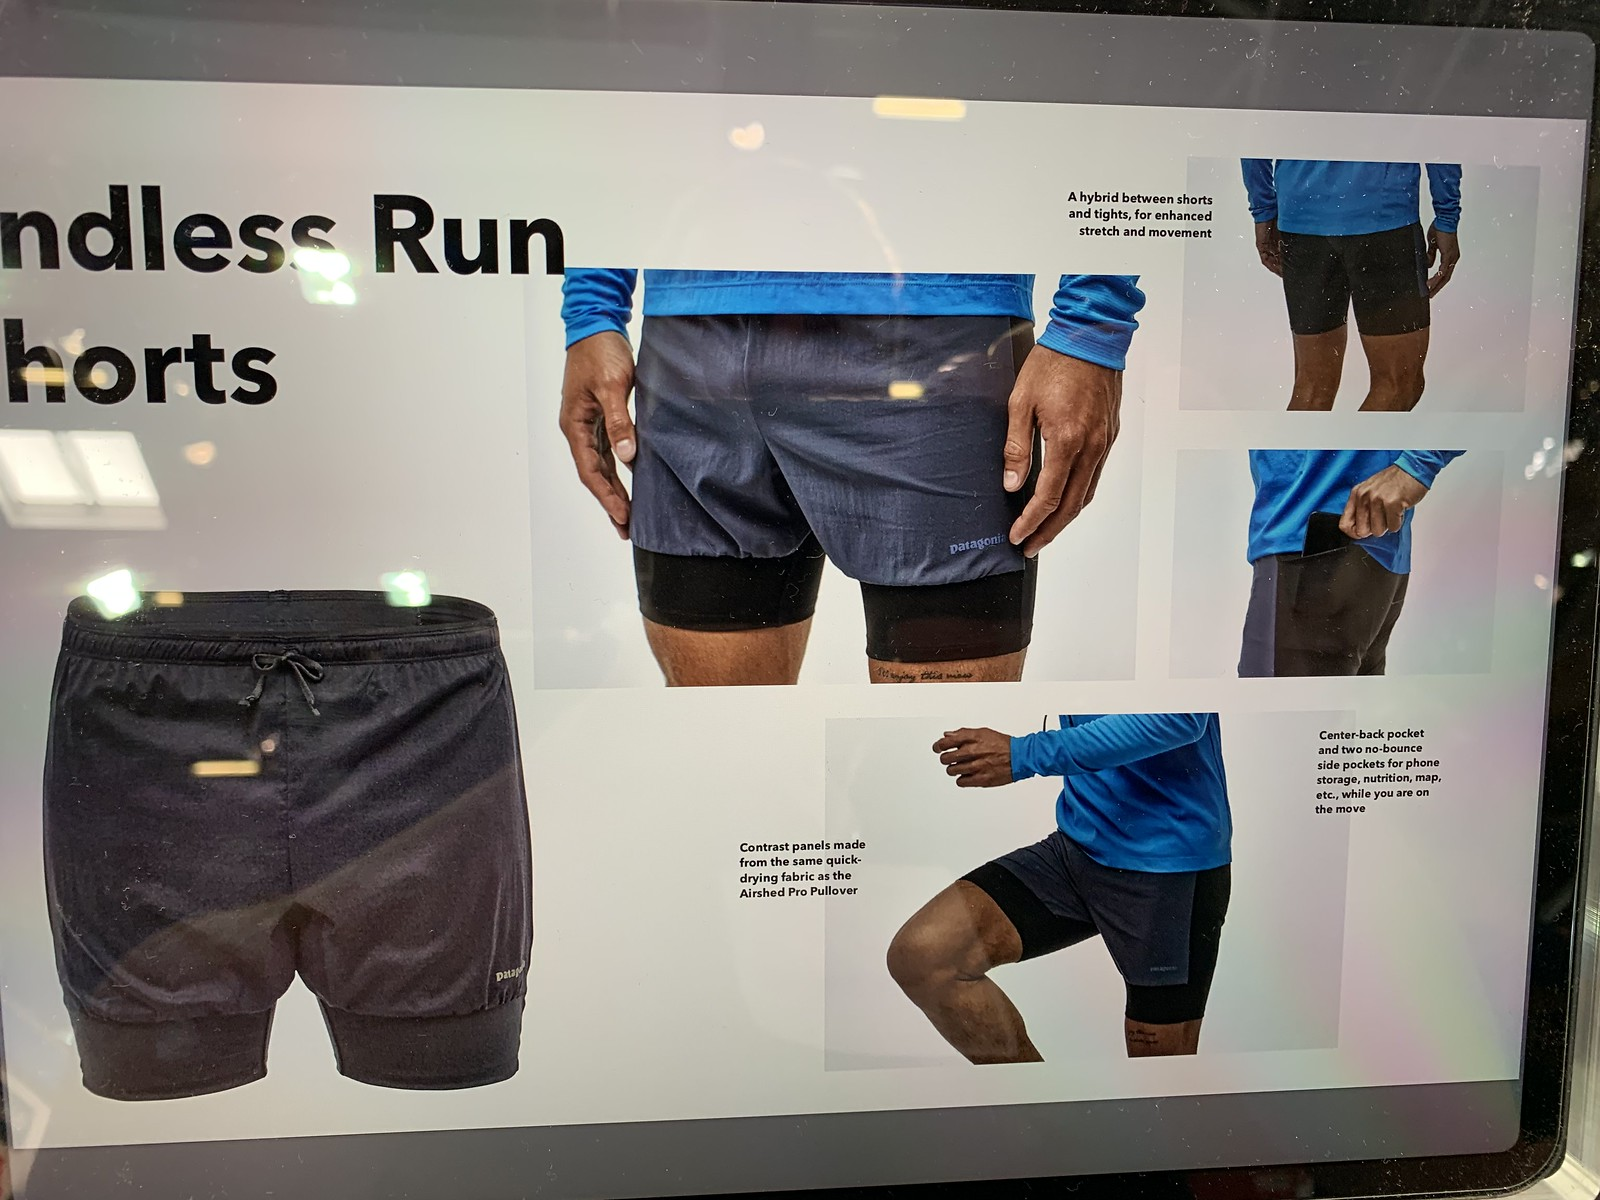 Patagonia Endless Run Shorts